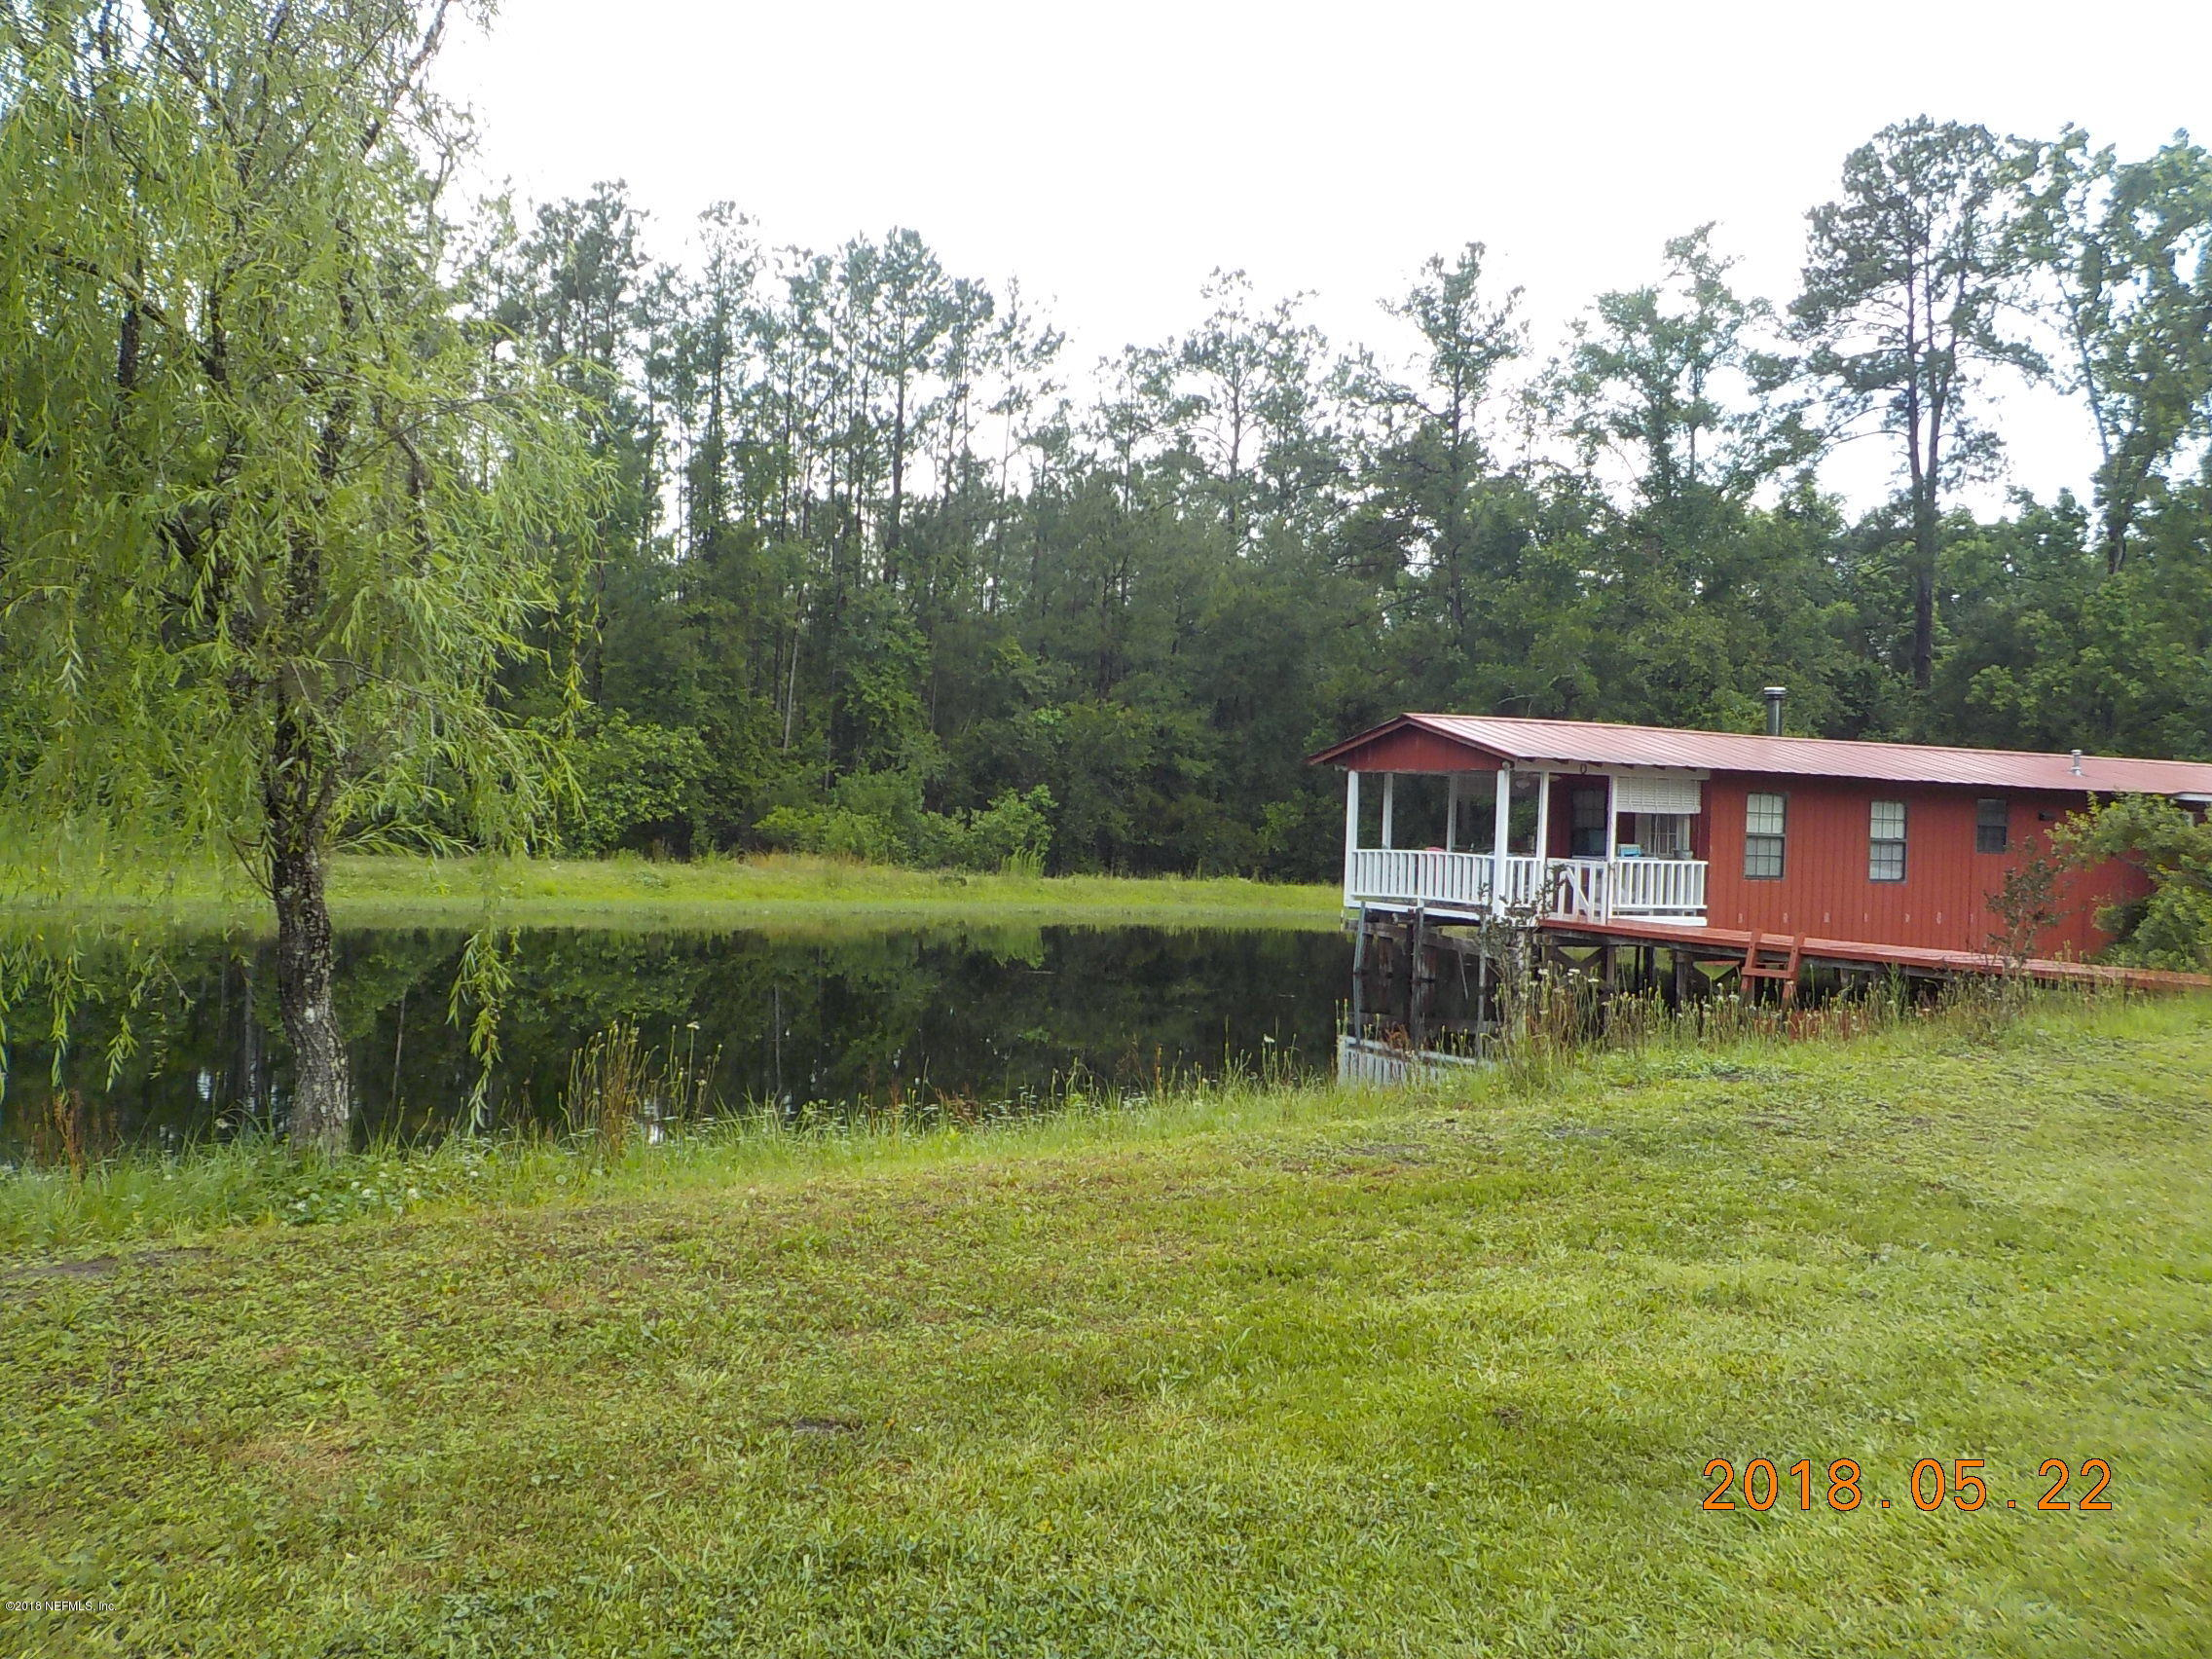 14534 CO RD 121, BRYCEVILLE, FLORIDA 32009, 3 Bedrooms Bedrooms, ,2 BathroomsBathrooms,Residential - single family,For sale,CO RD 121,937959